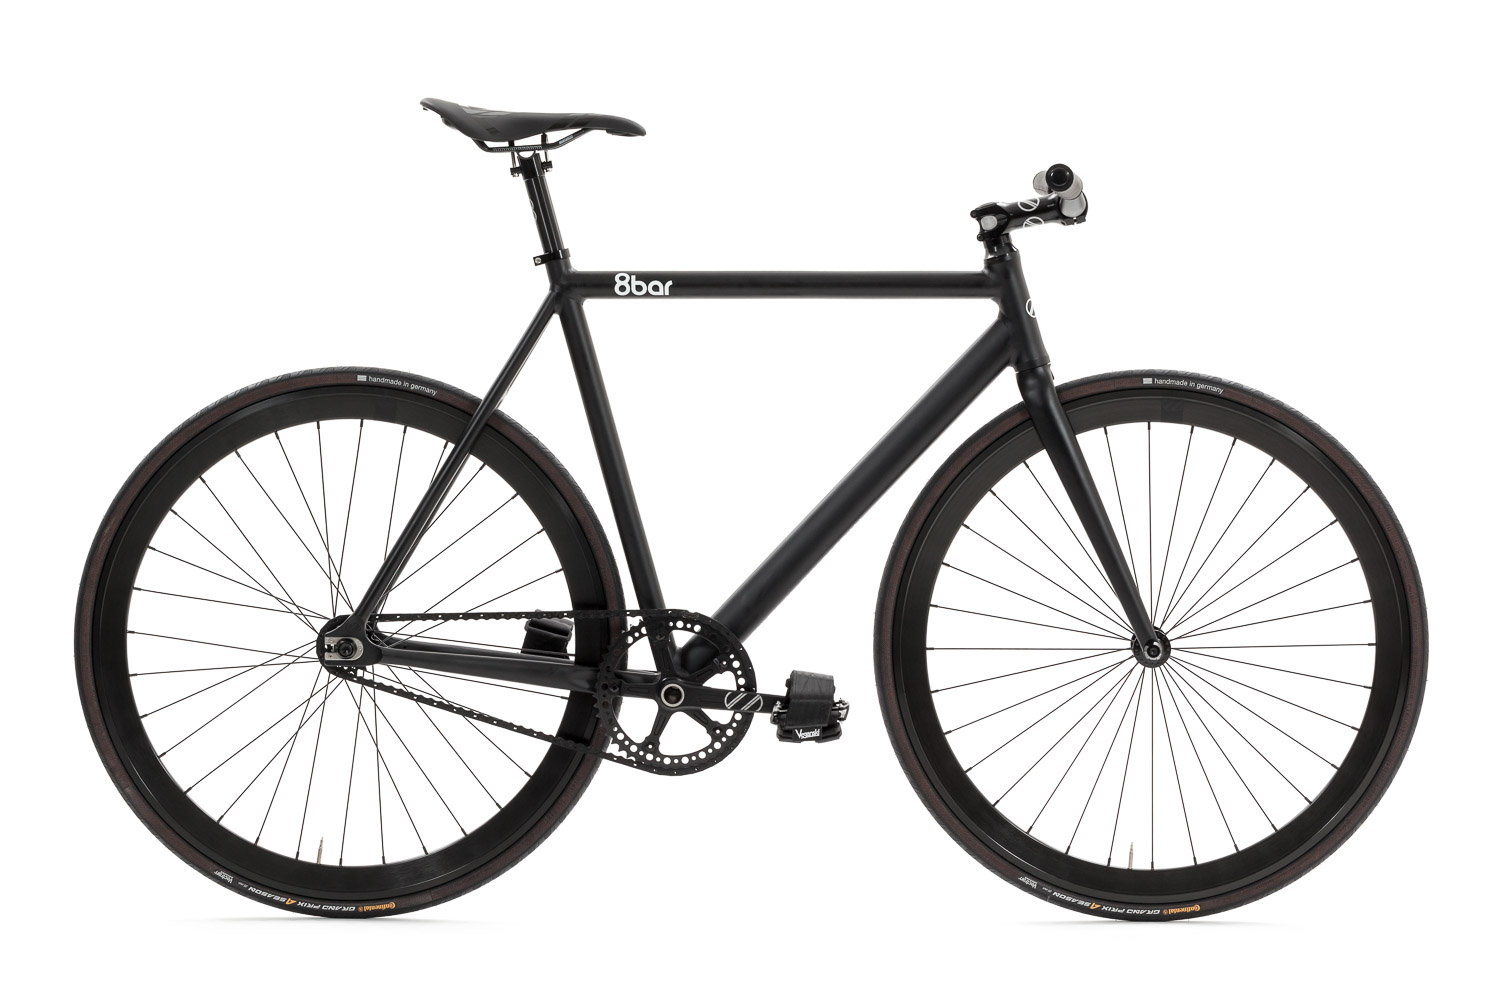 8bar-fhain-pro-black-riser-fixie-fixed-gear-1